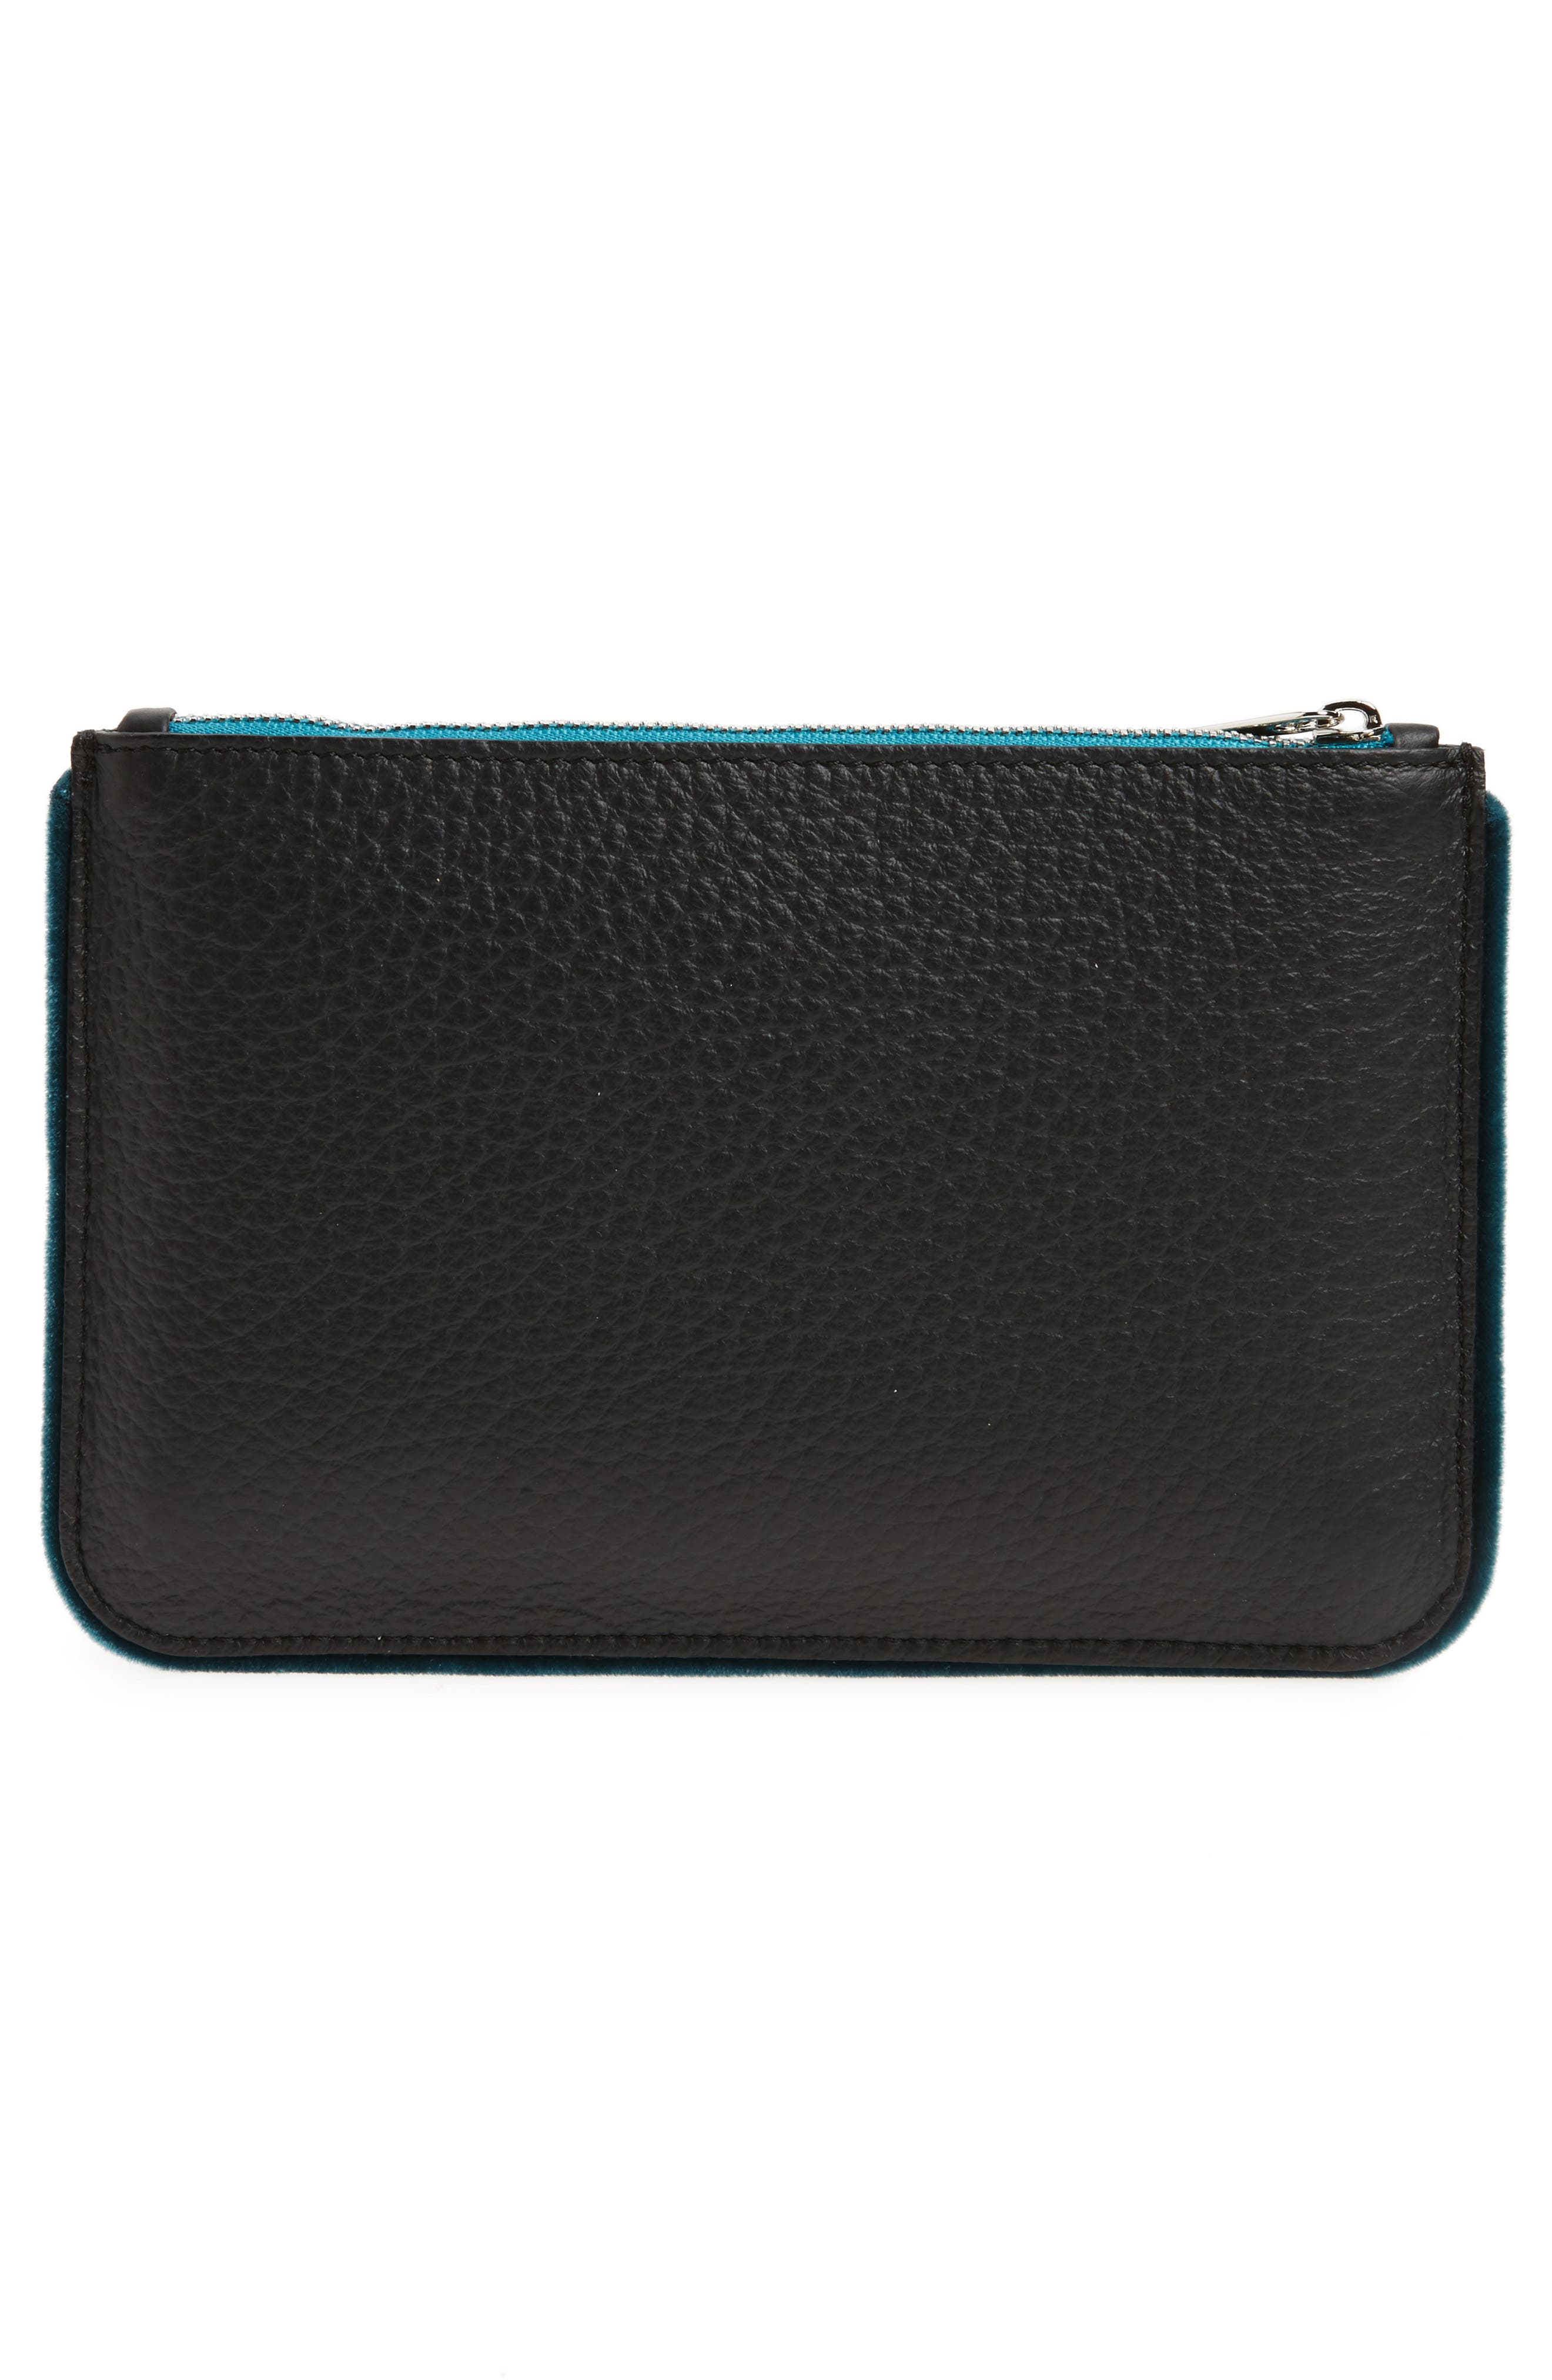 Alternate Image 2  - Orciani Large Soft Line Velvet Trim Calfskin Leather Pouch